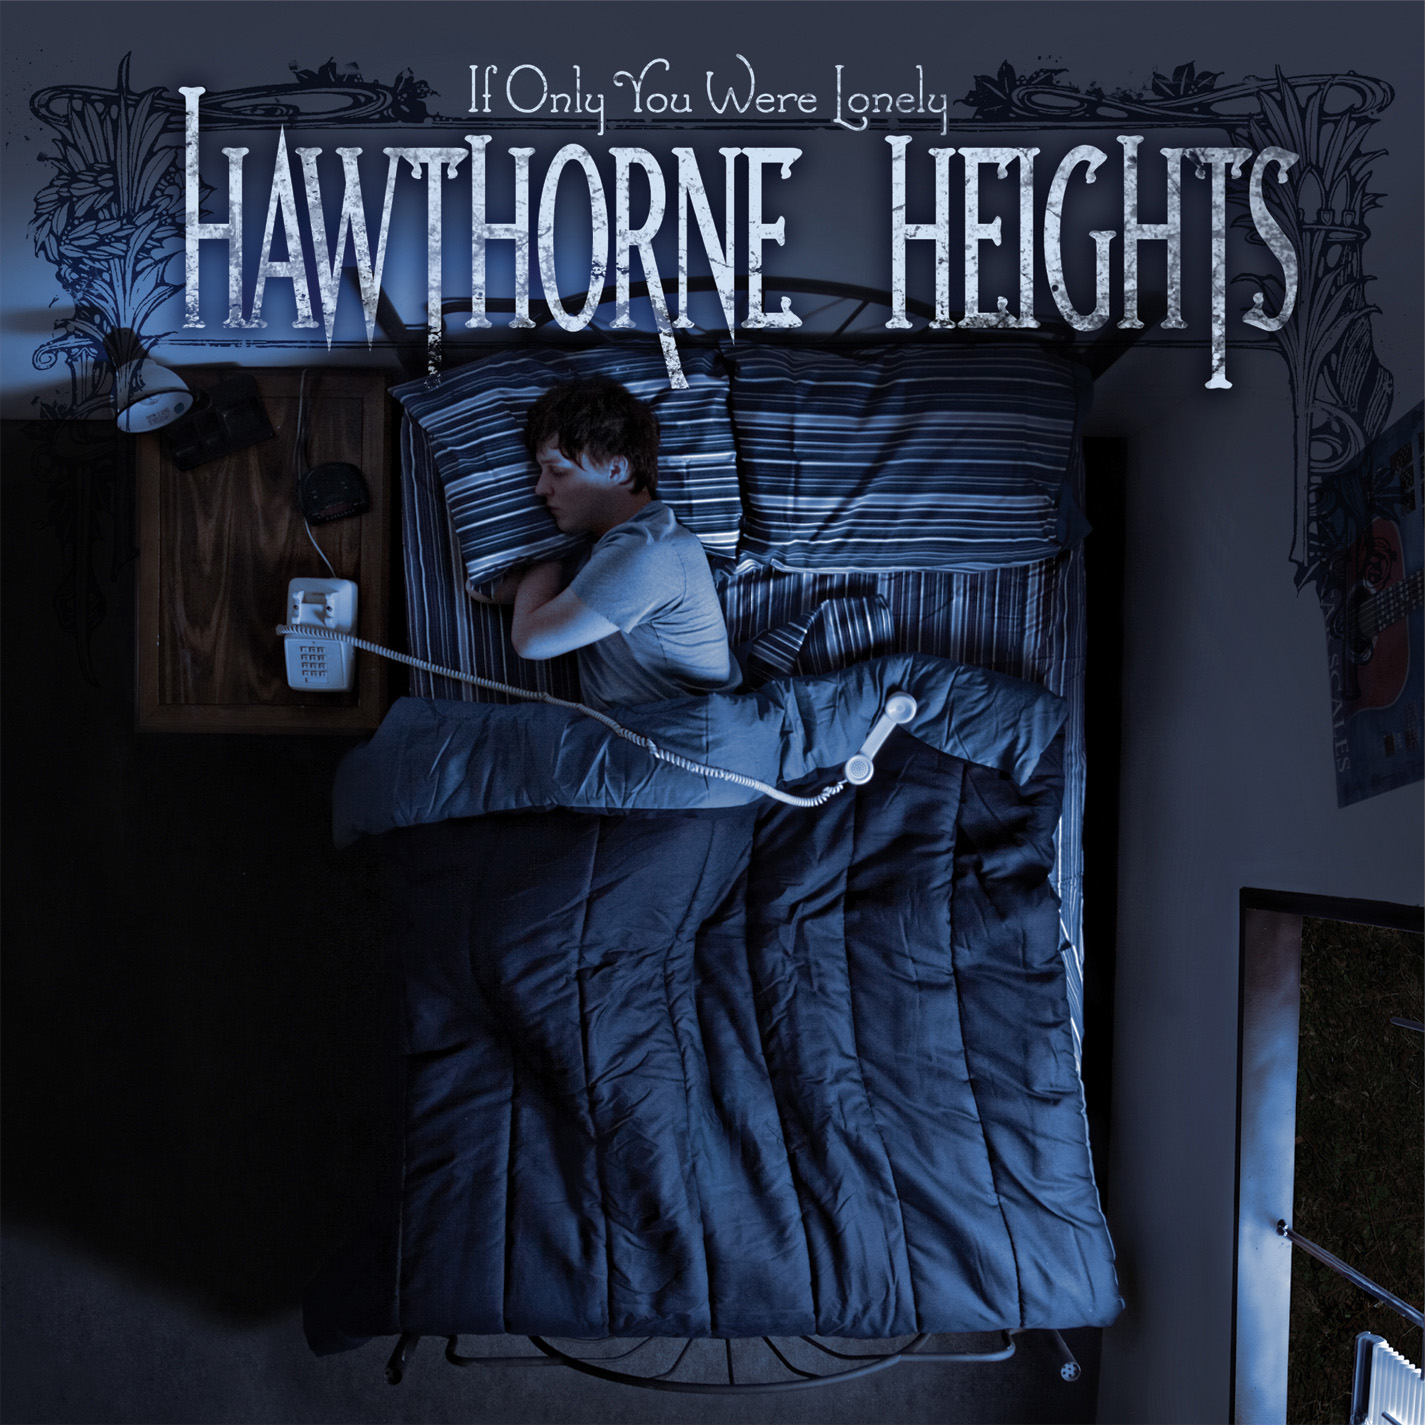 Hawthorne Heights, If Only You Were Lonely